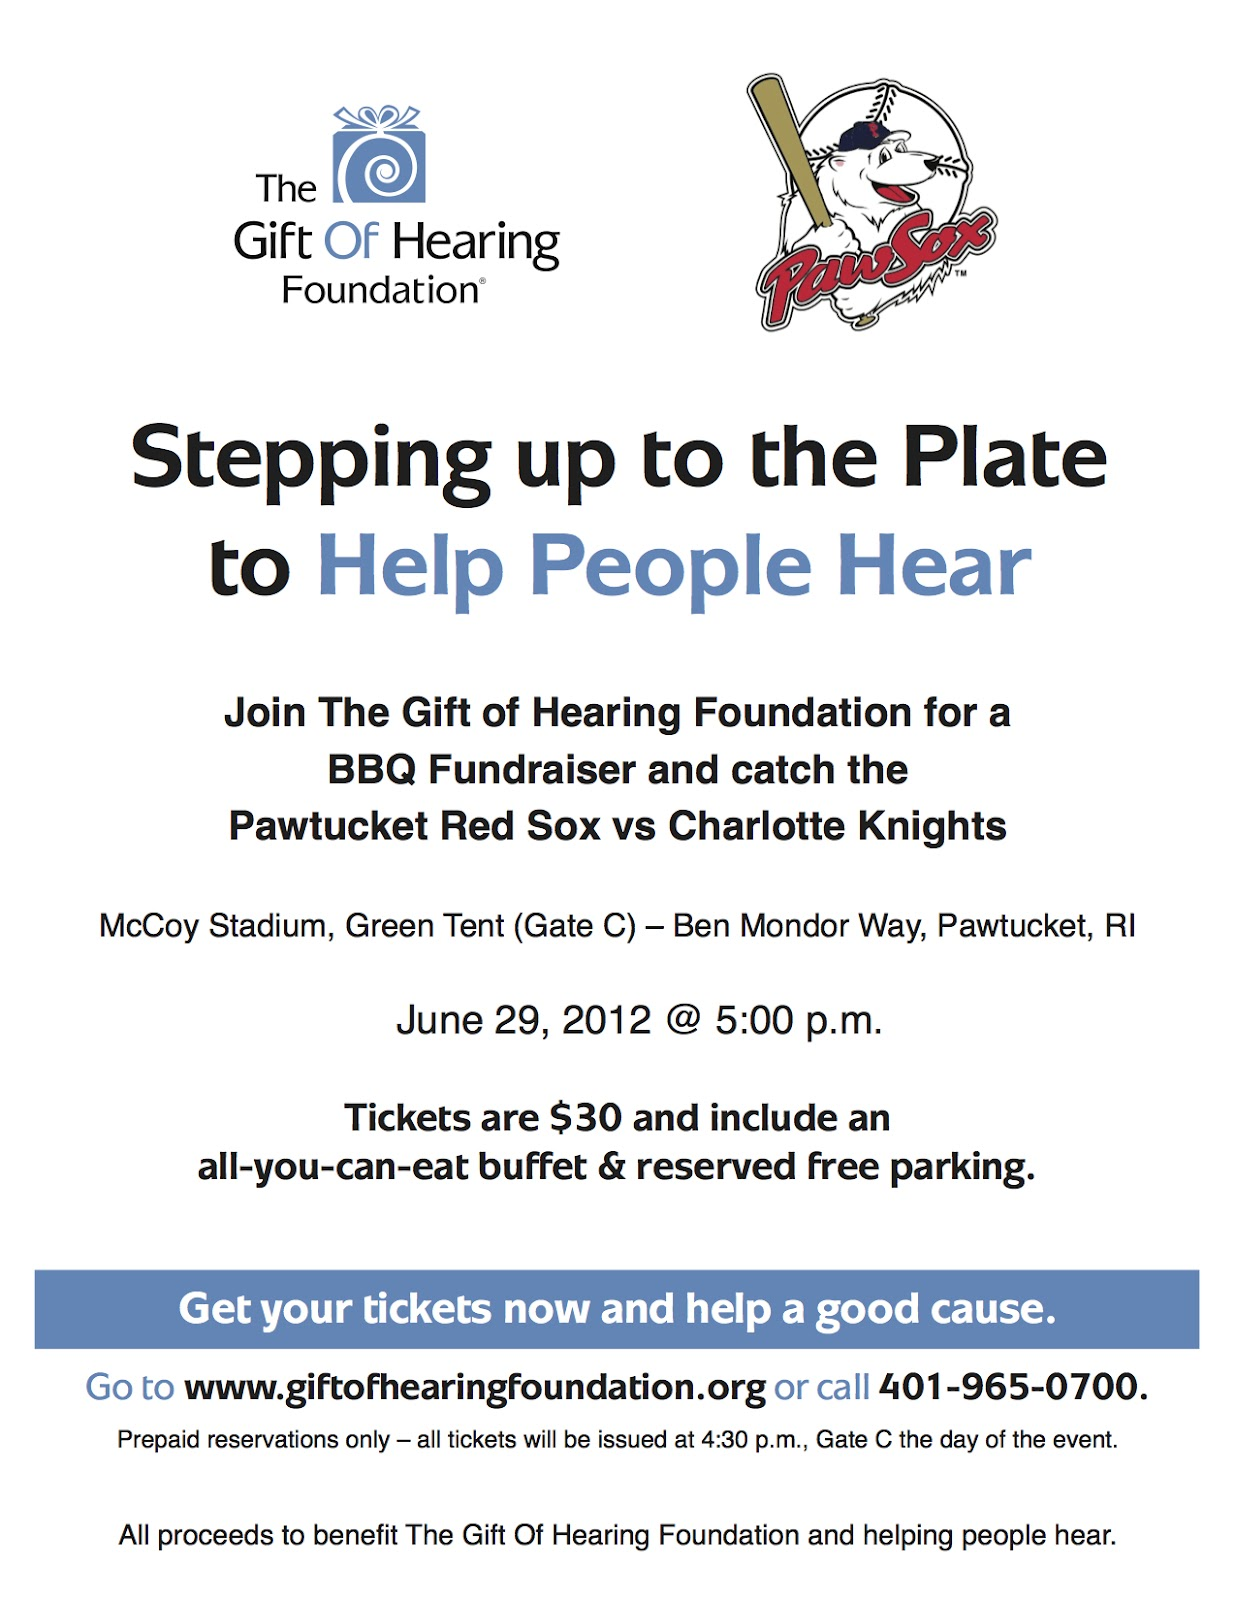 Fundraiser for The Gift of Hearing Foundation